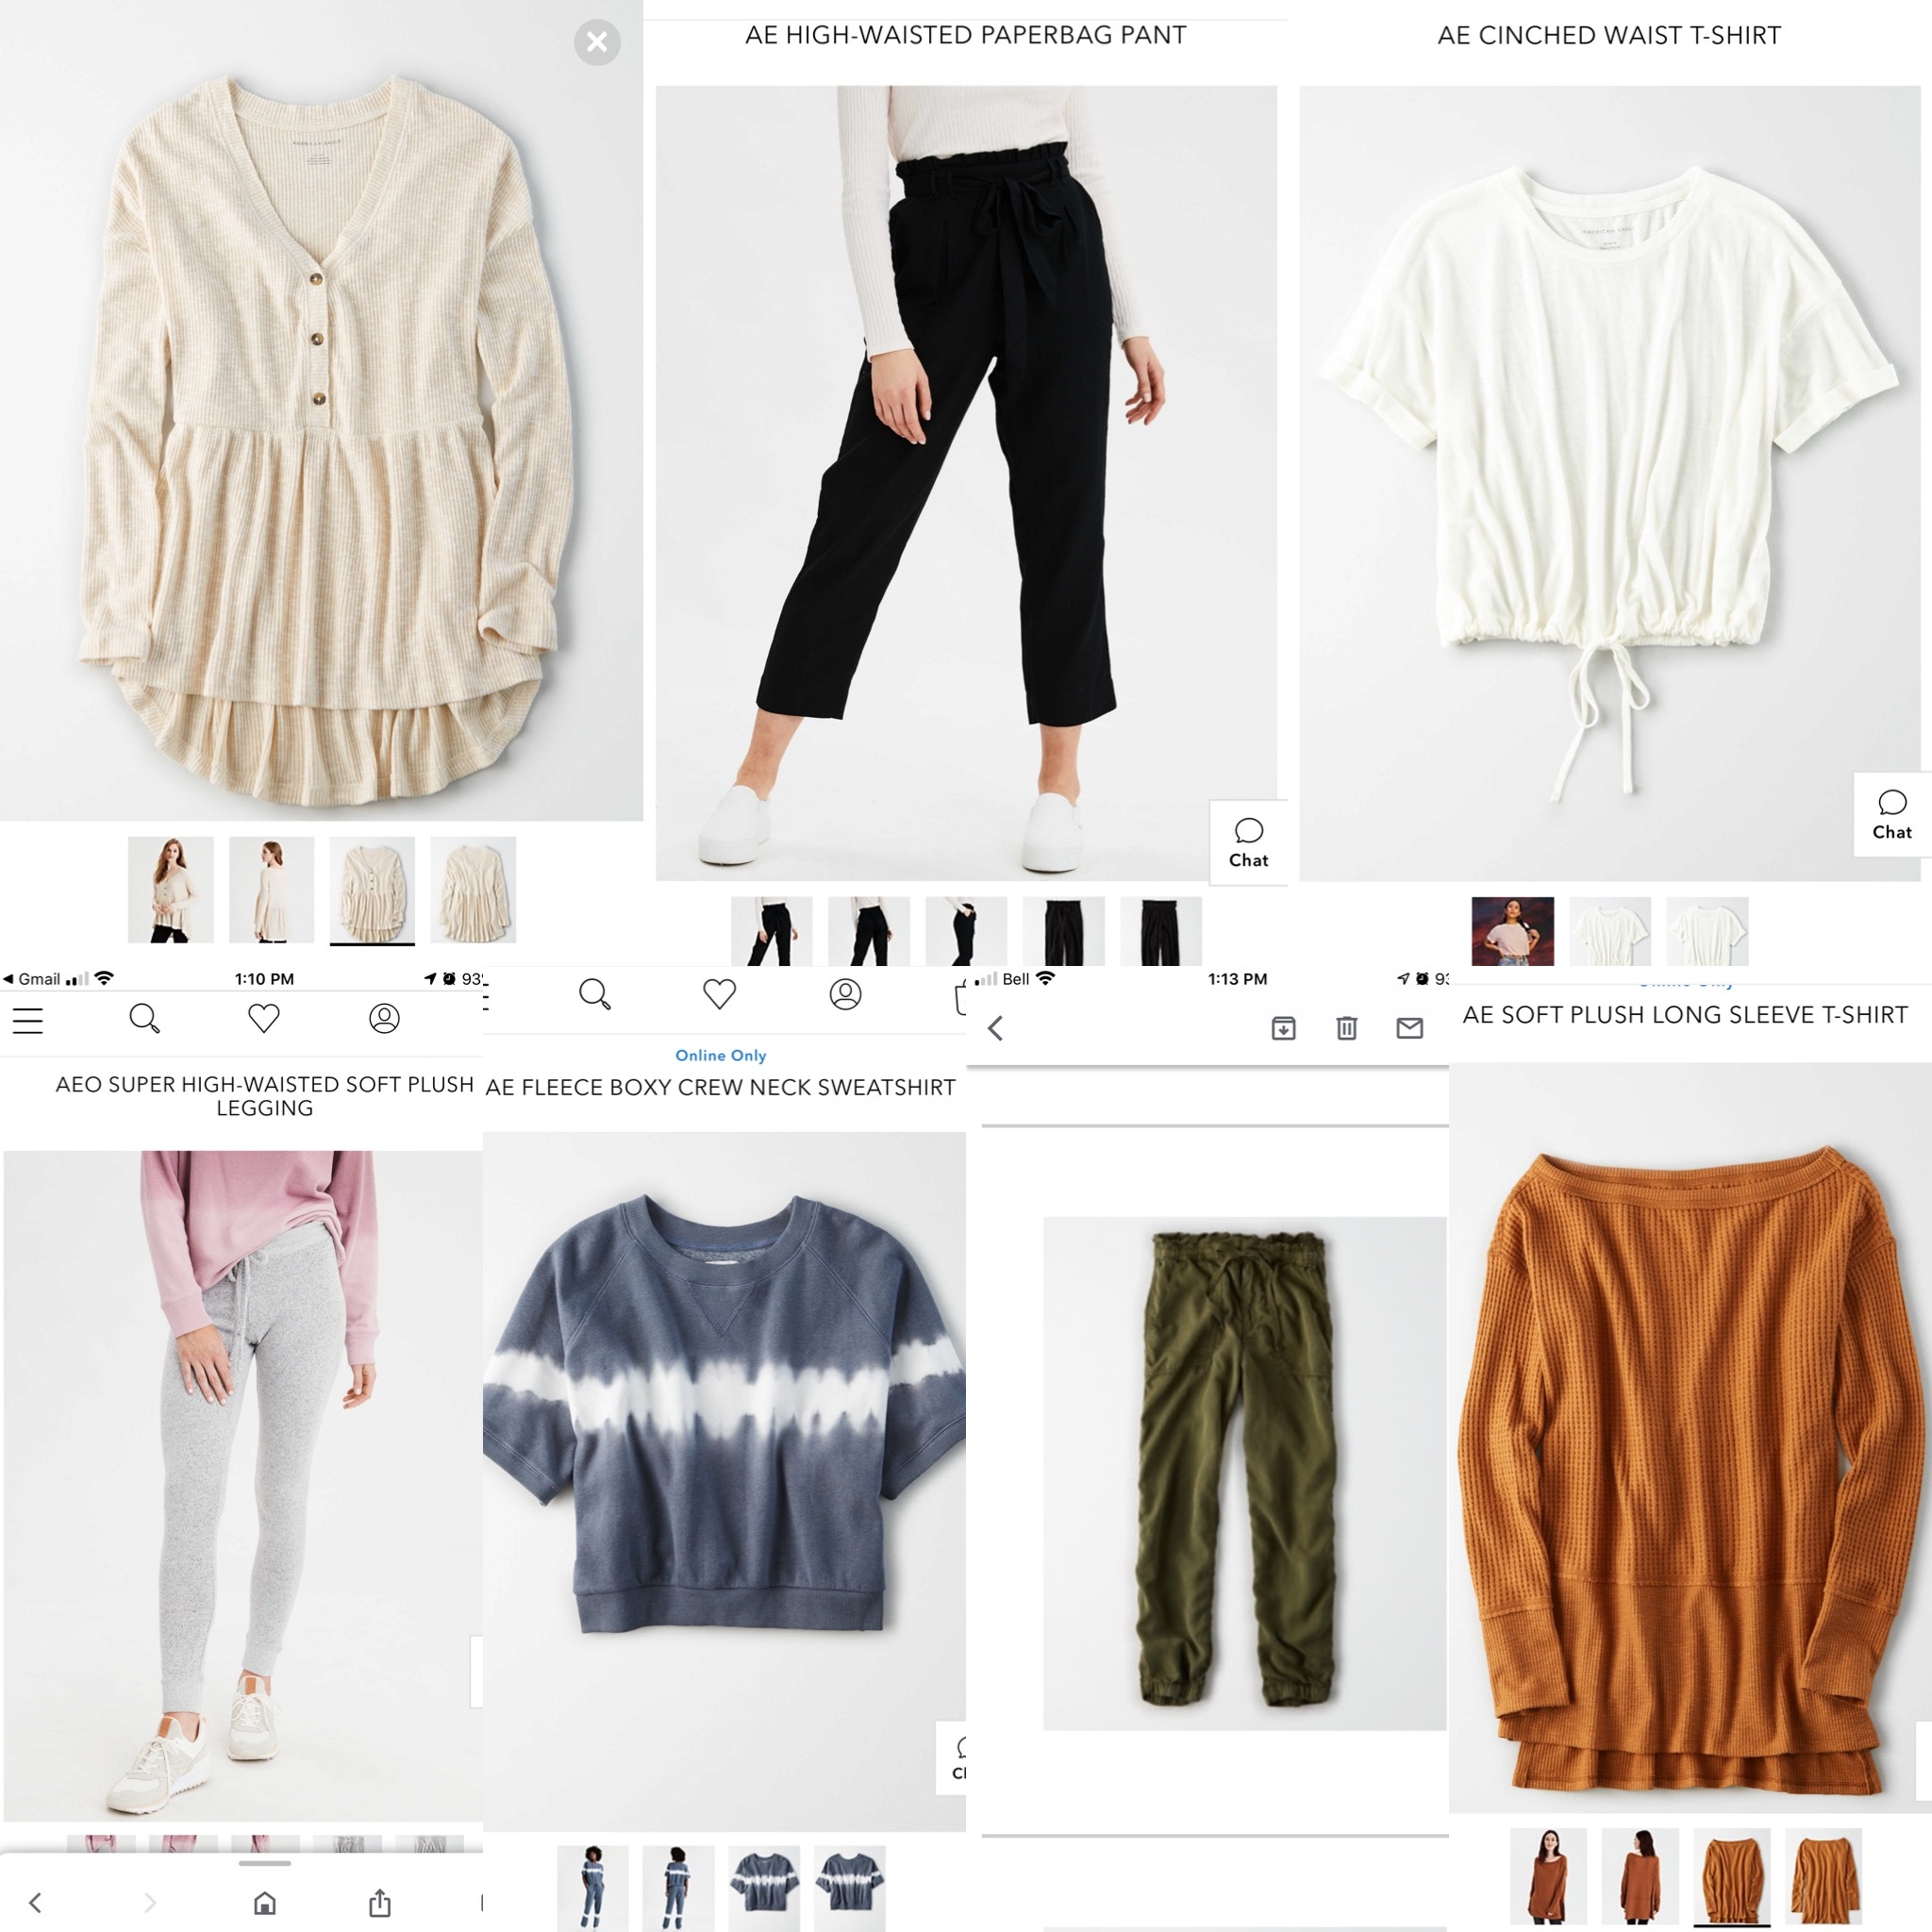 American Eagle, AE, American Eagle haul, lounge wear, loungewear, comfy clothes, sweatpants